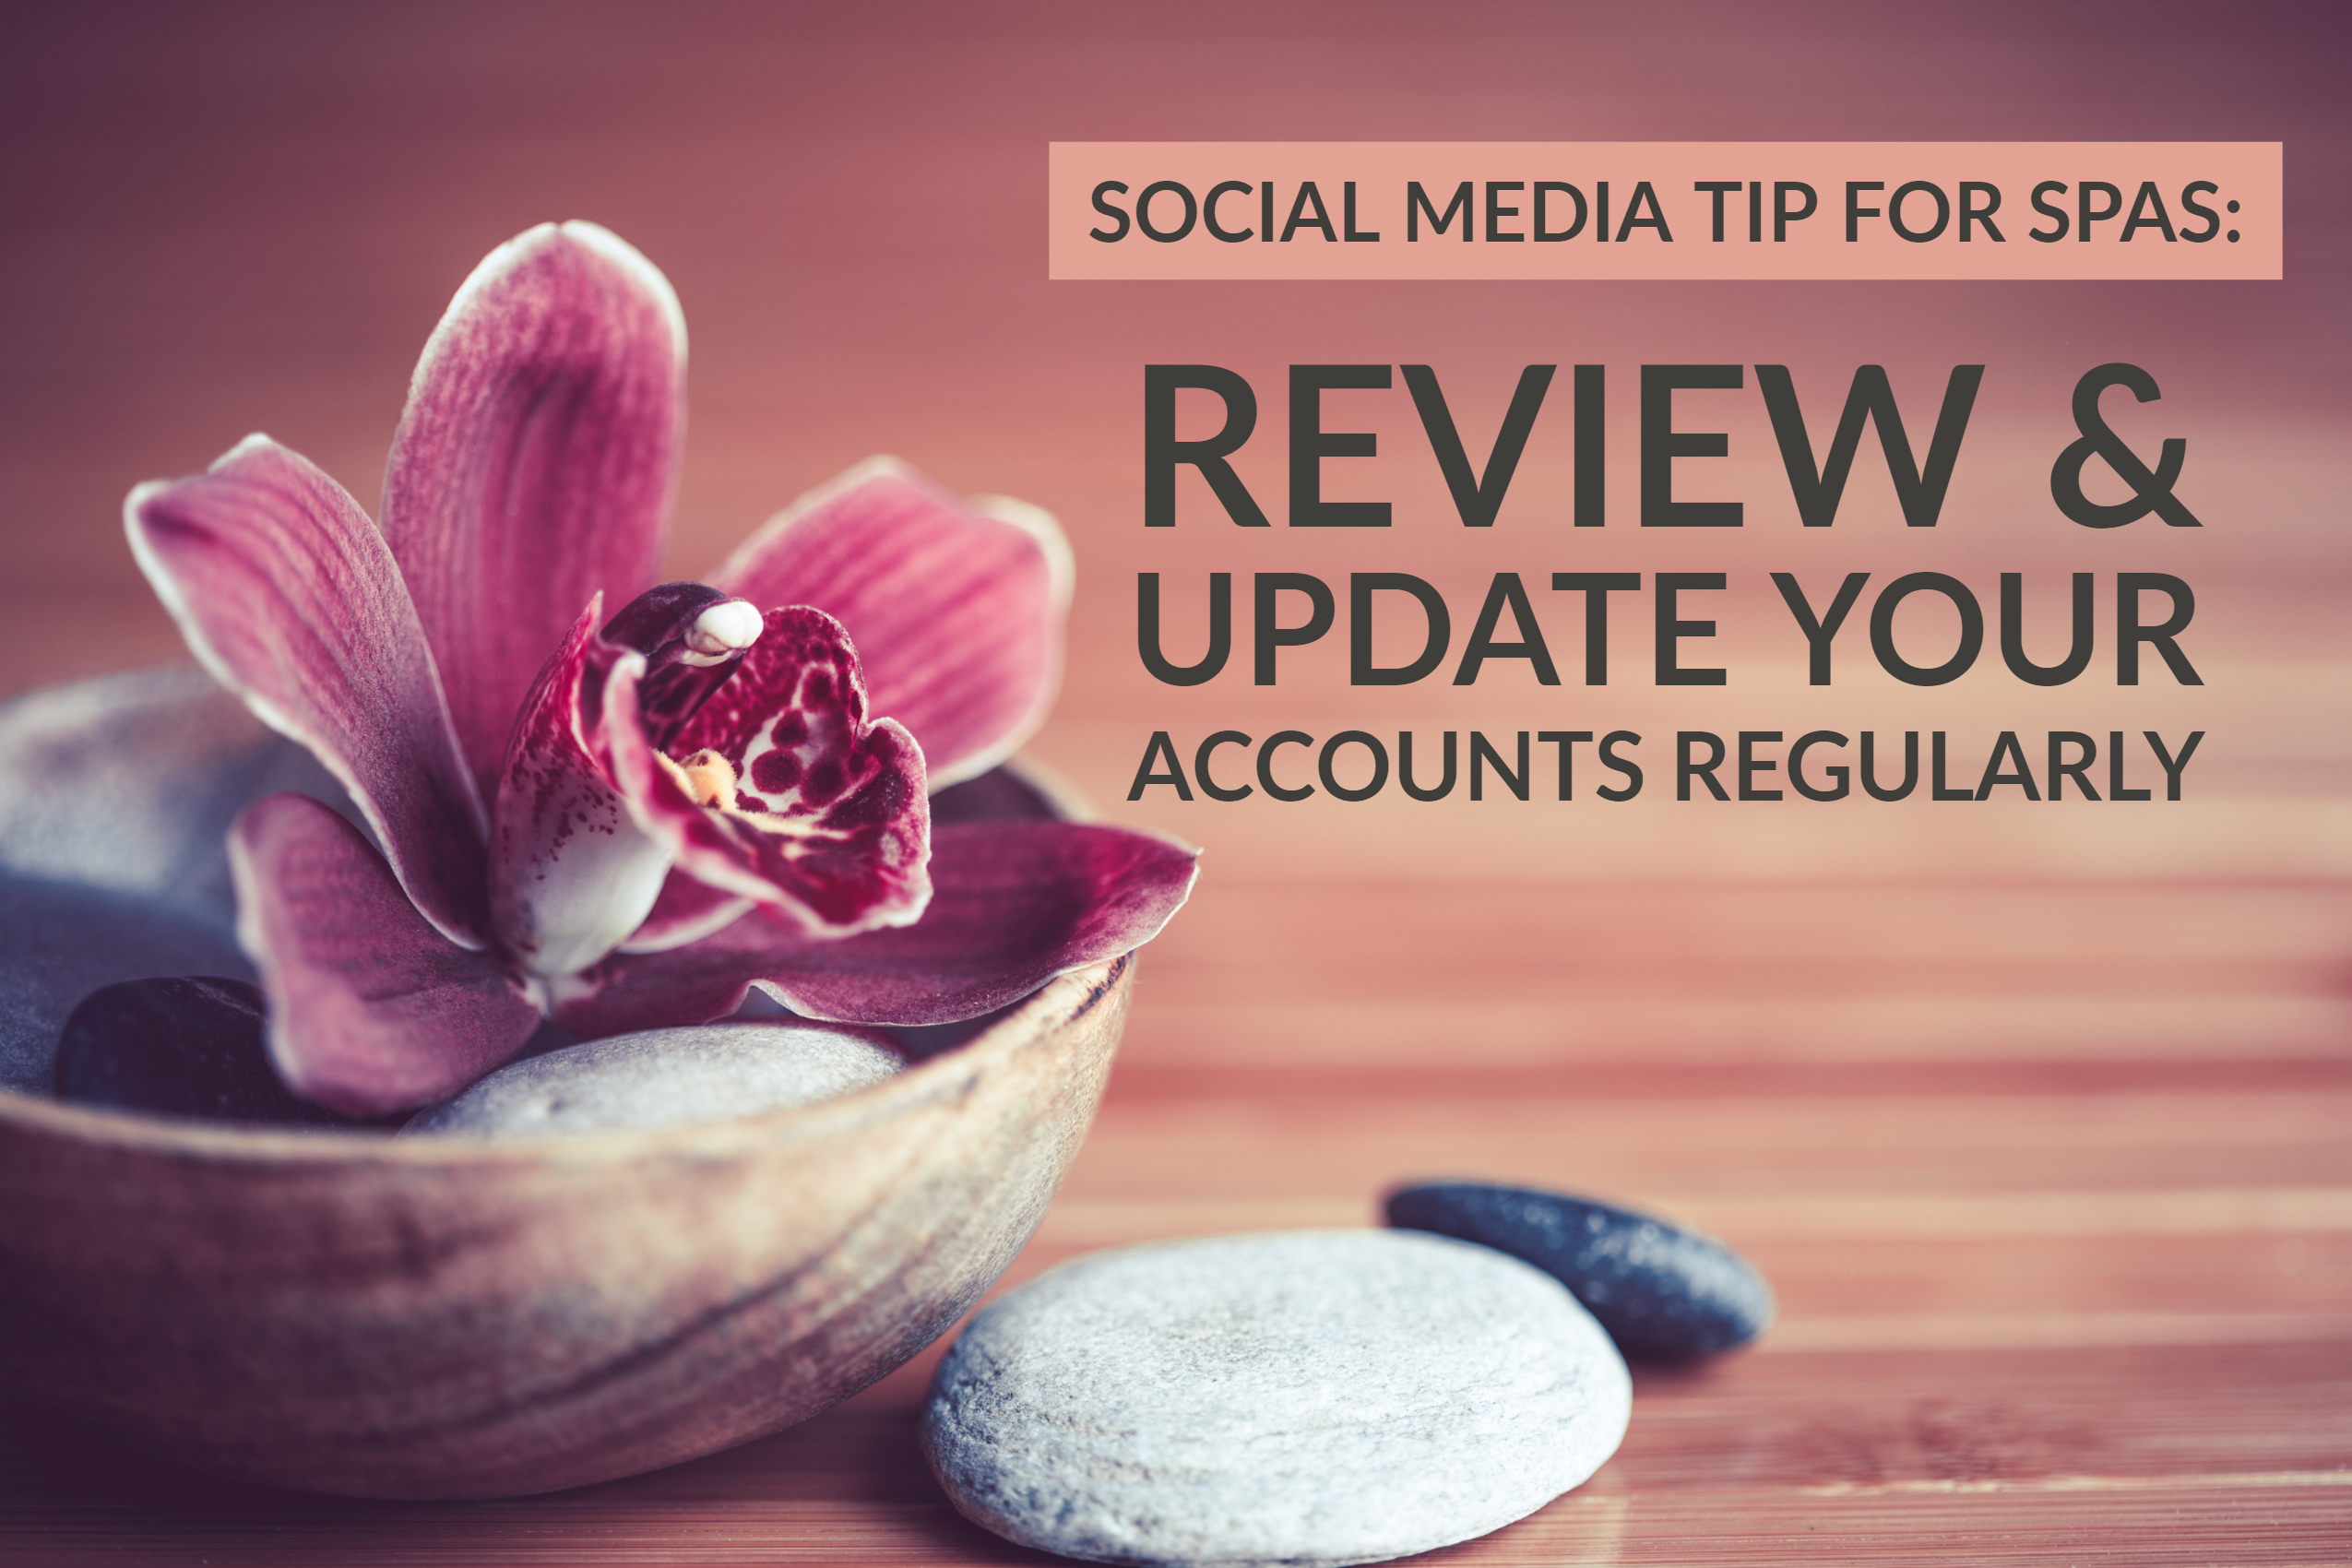 Social Media Tip For Spas_ Review & Update Your Accounts Regularly